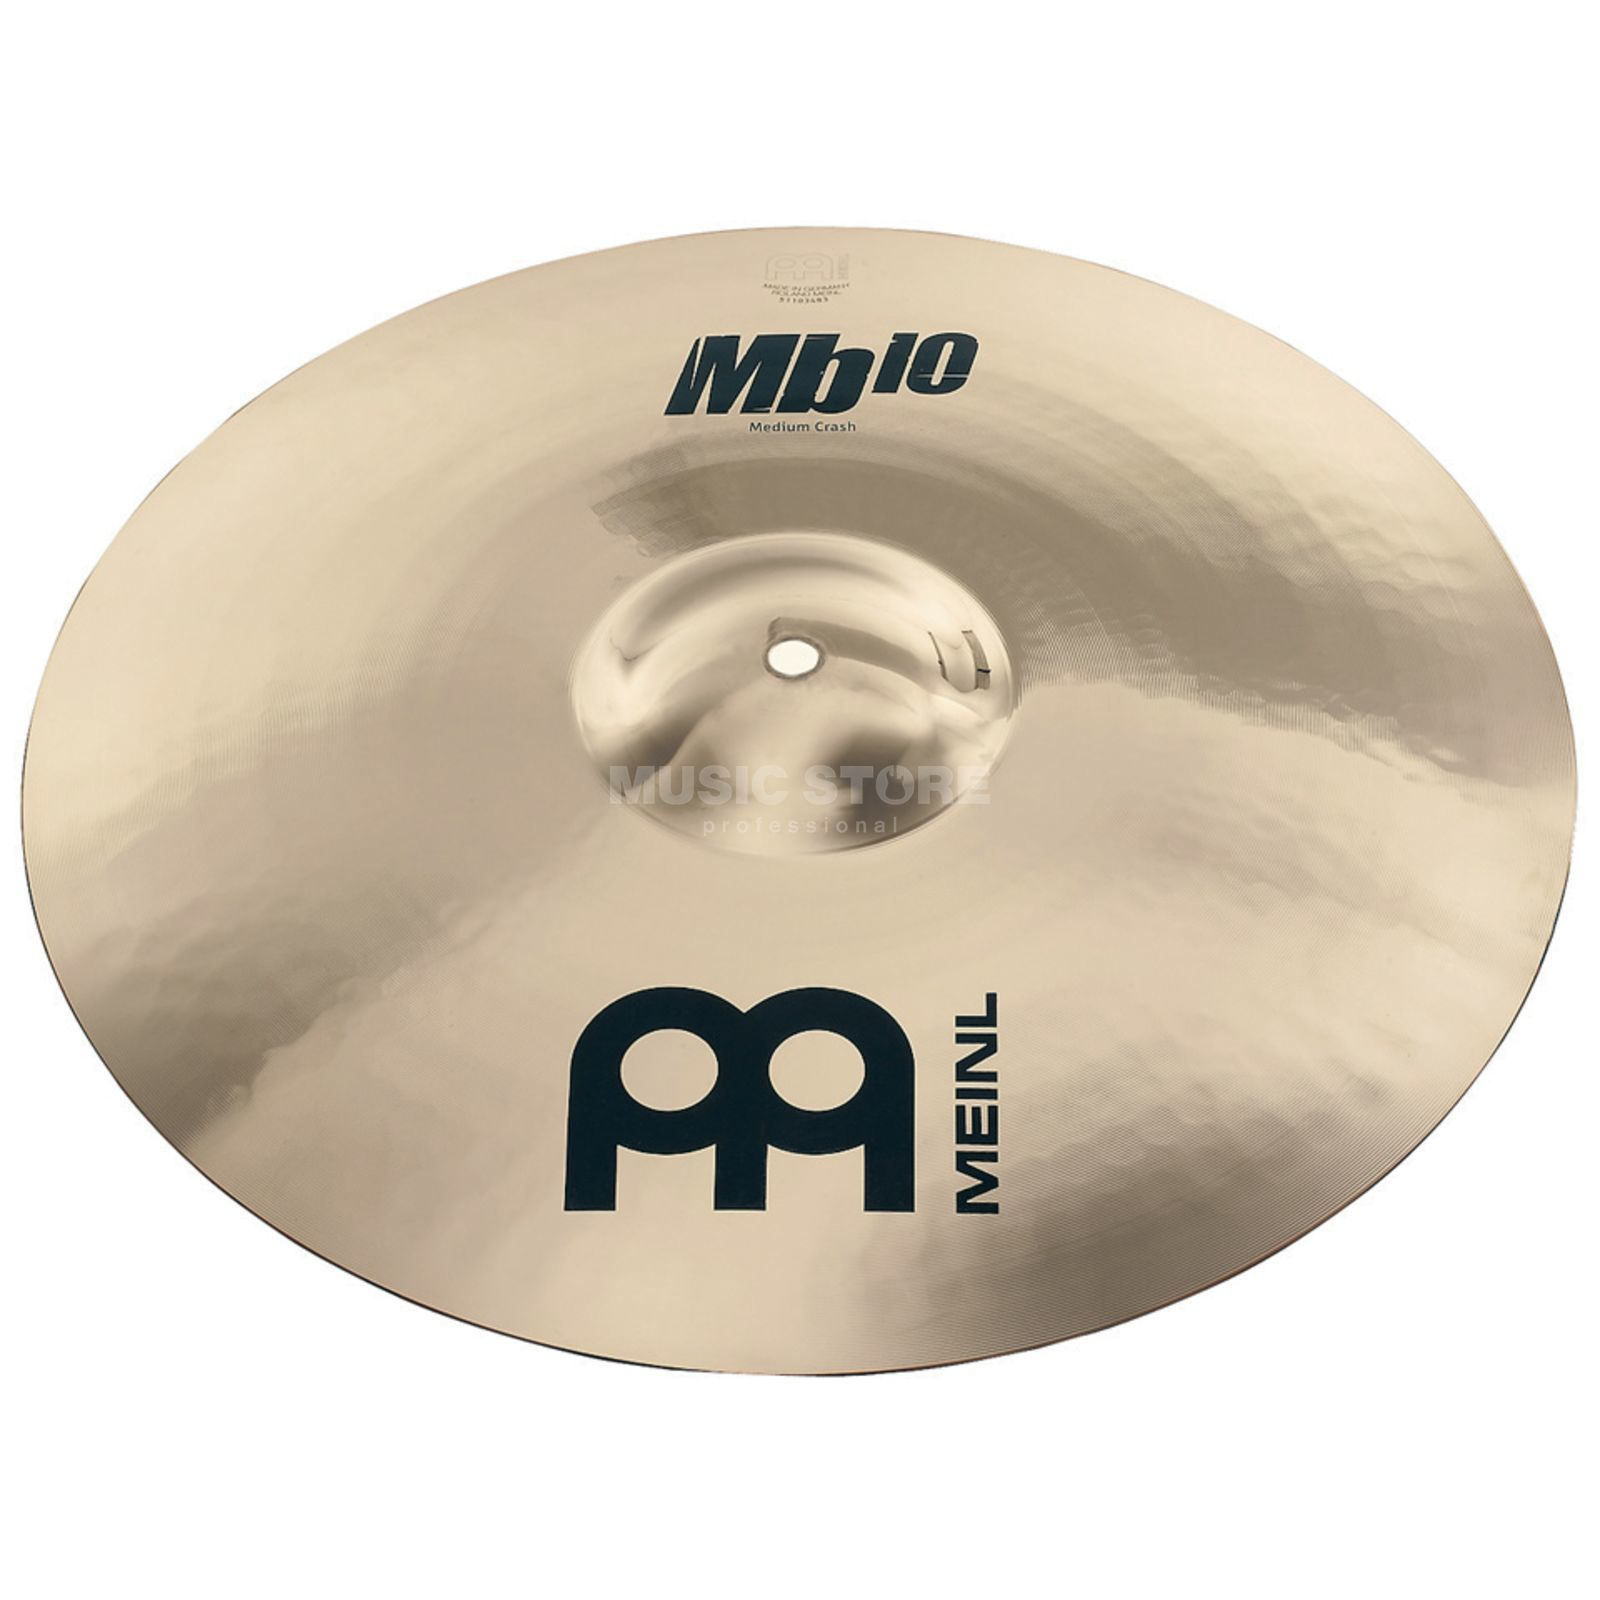 "Meinl MB10 Medium Crash 14"" MB10-14MC-B, Brilliant Finish Produktbillede"